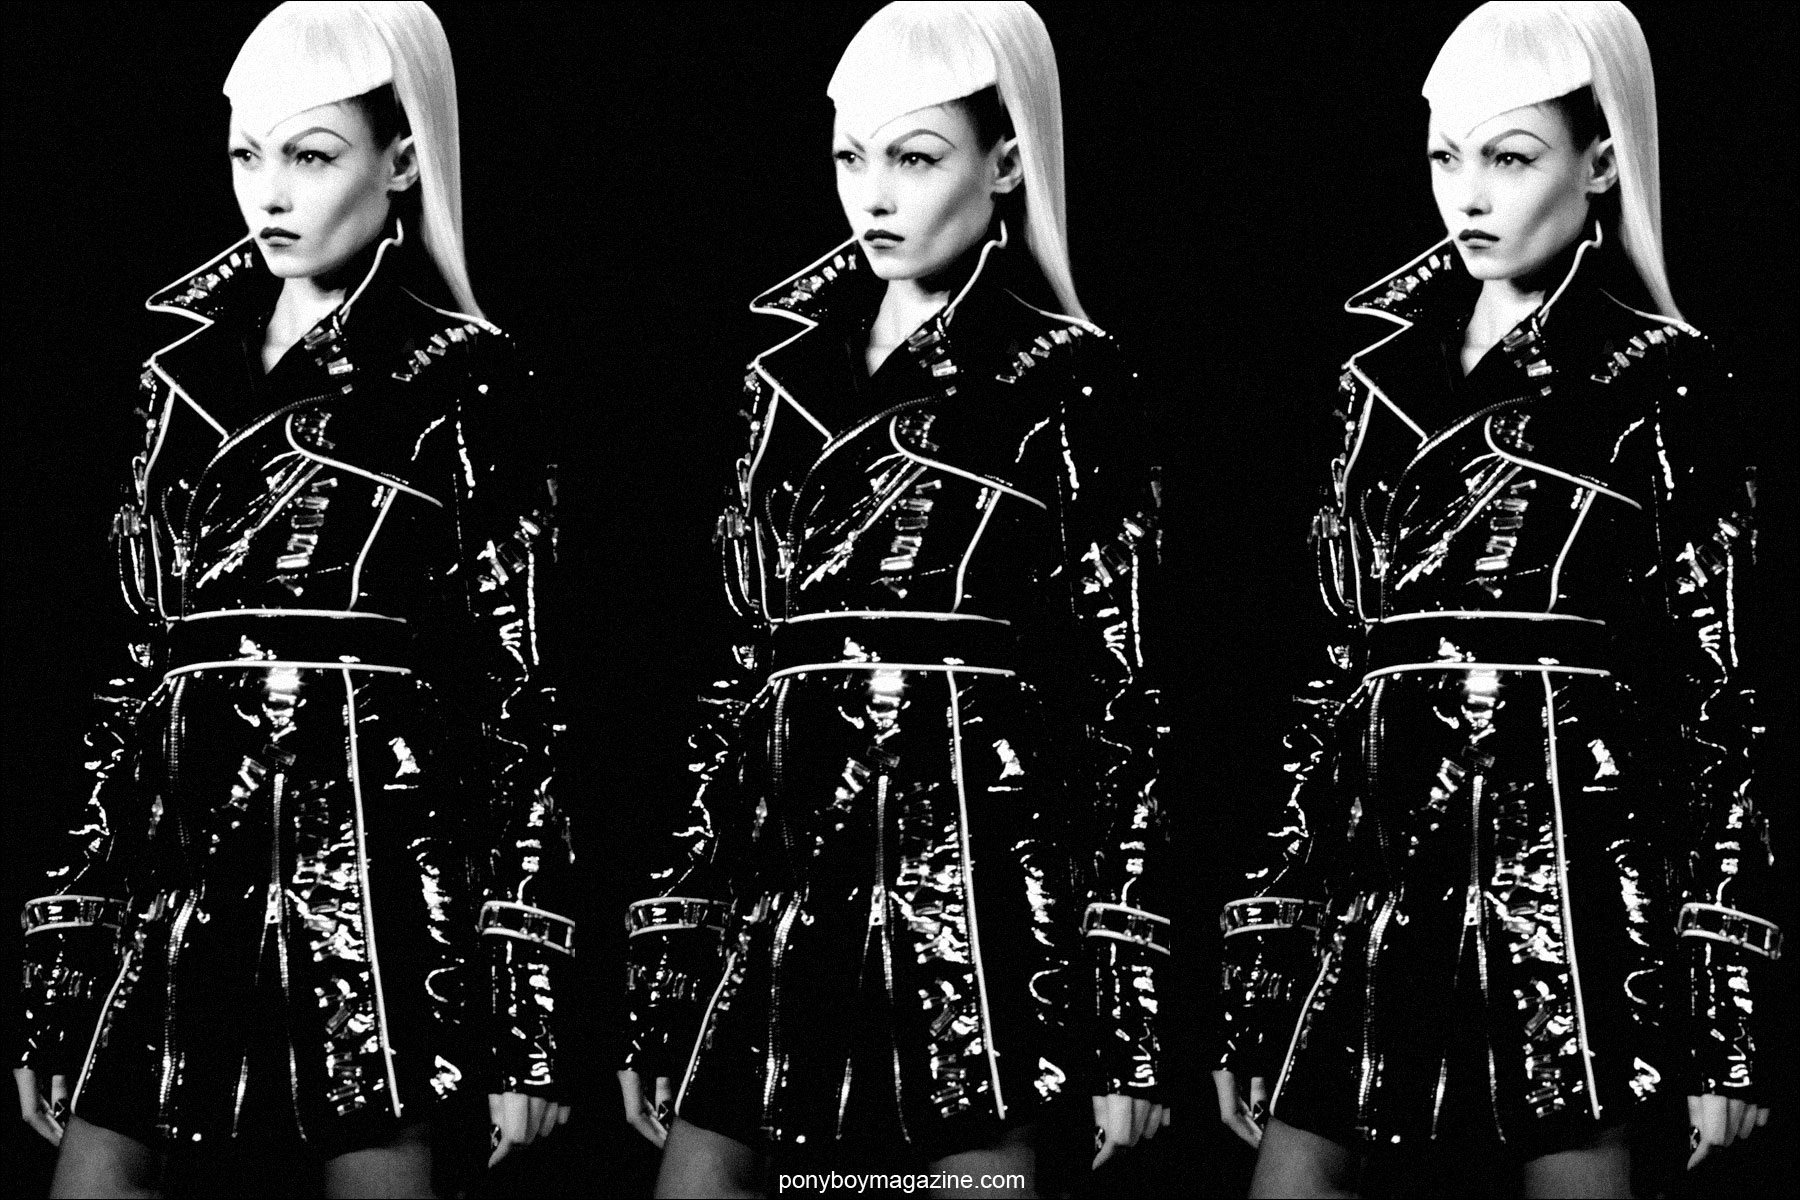 Patent leather jacket at The Blonds A/W 2014 Collection in New York City. Photographed by Alexander Thompson for Ponyboy Magazine.